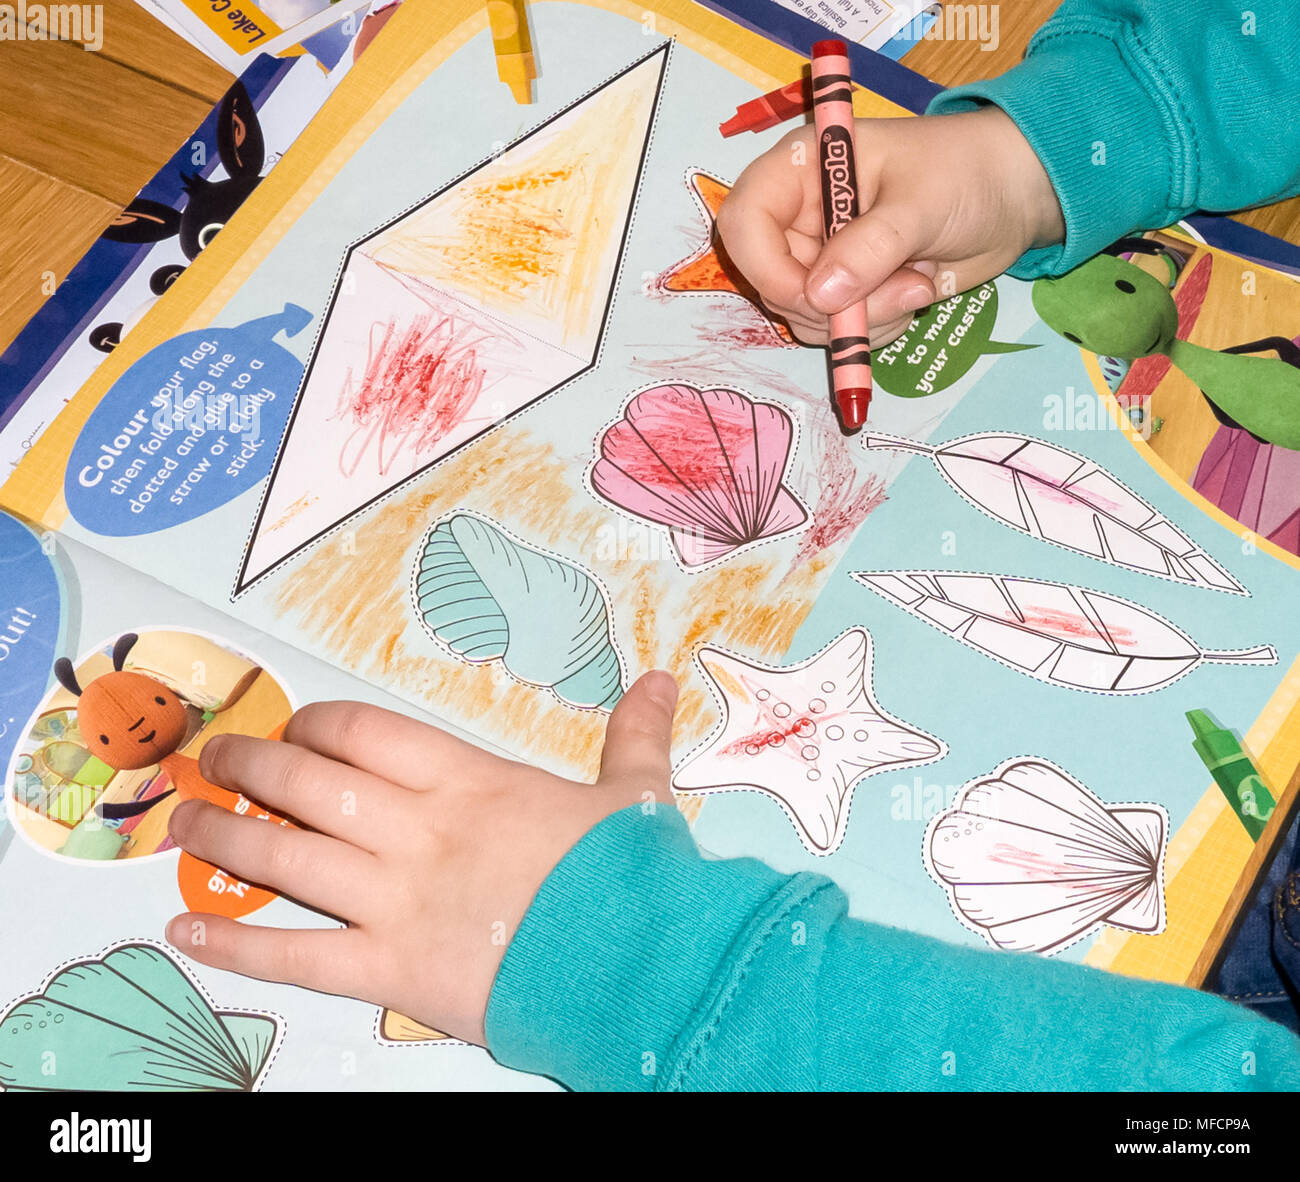 Largs, UK - March 05, 2018: A child colouring in a project from the ...